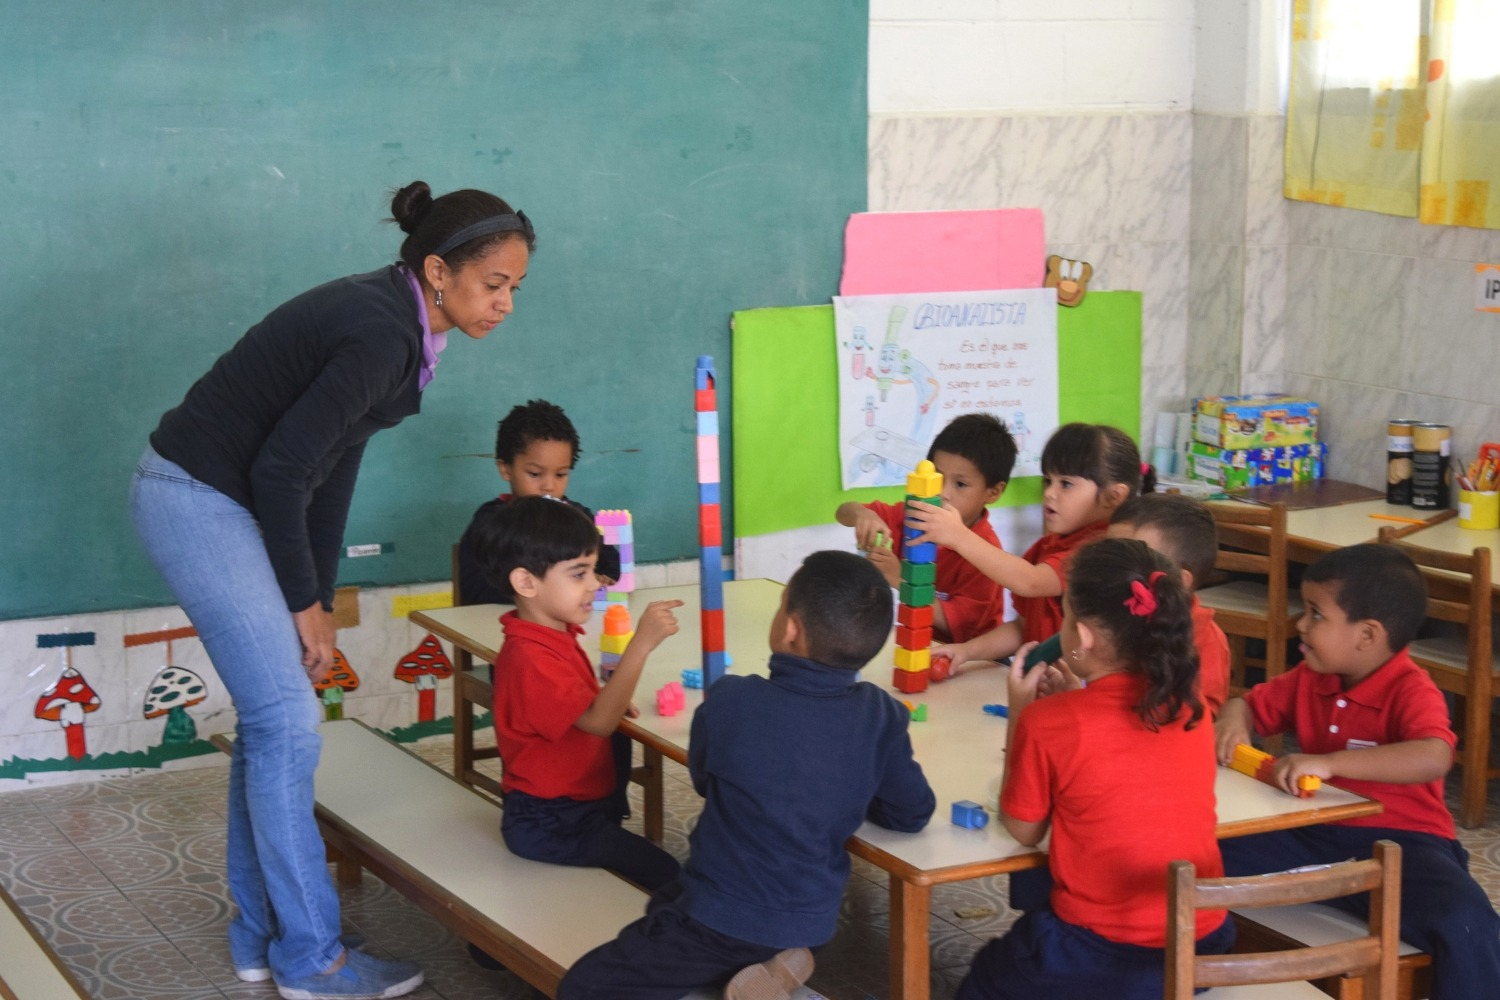 Director of Fe y Alegría Venezuela: There are so many things to do, to dream, to design!